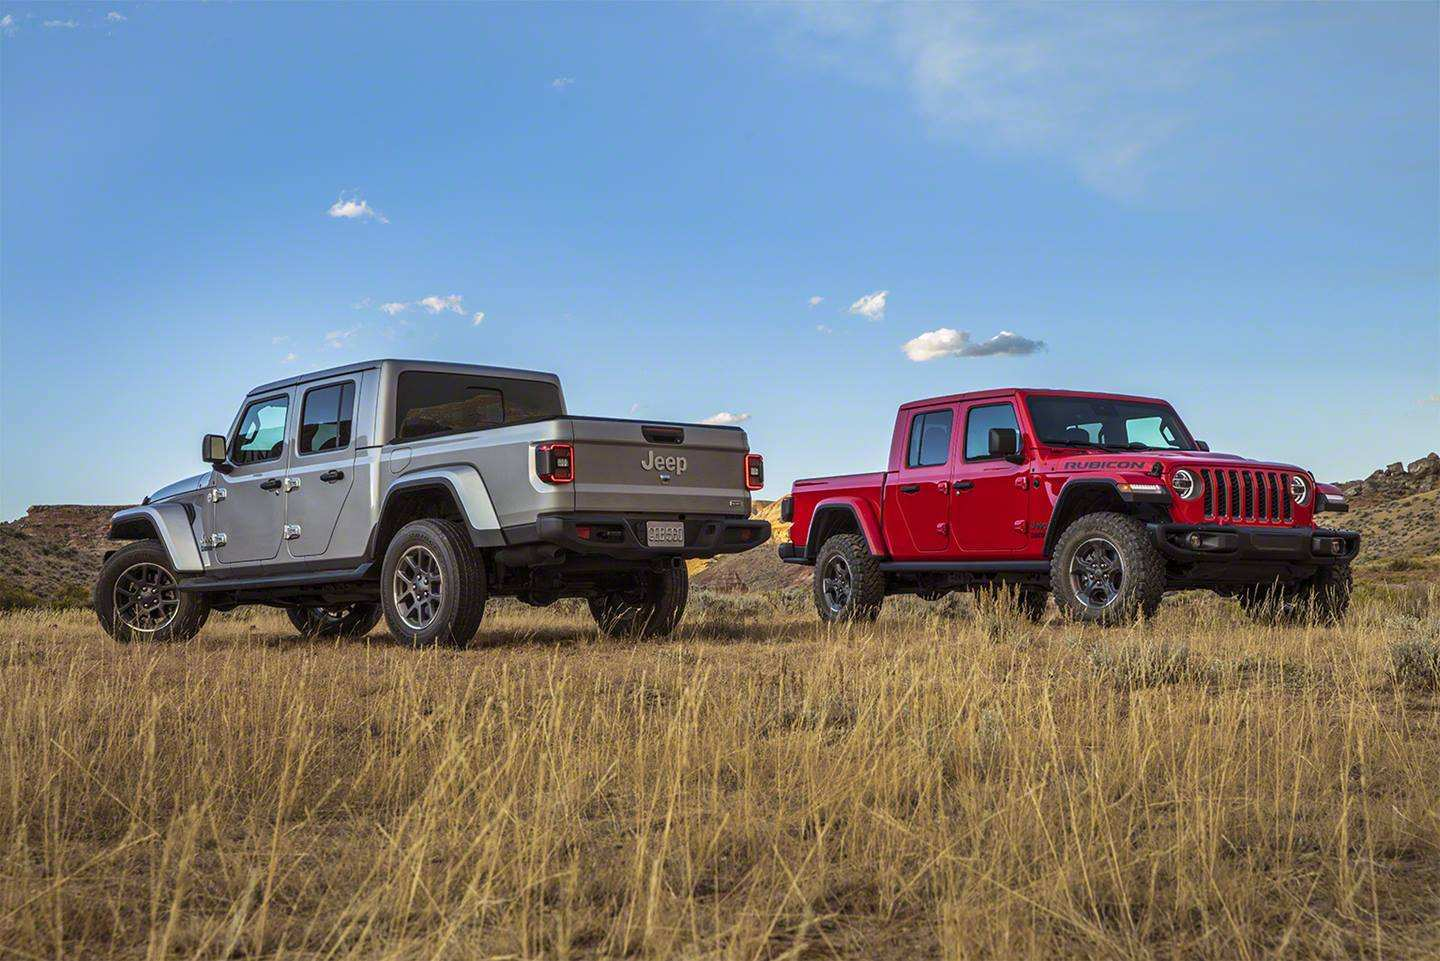 35 All New Jeep Comanche 2020 New Concept by Jeep Comanche 2020